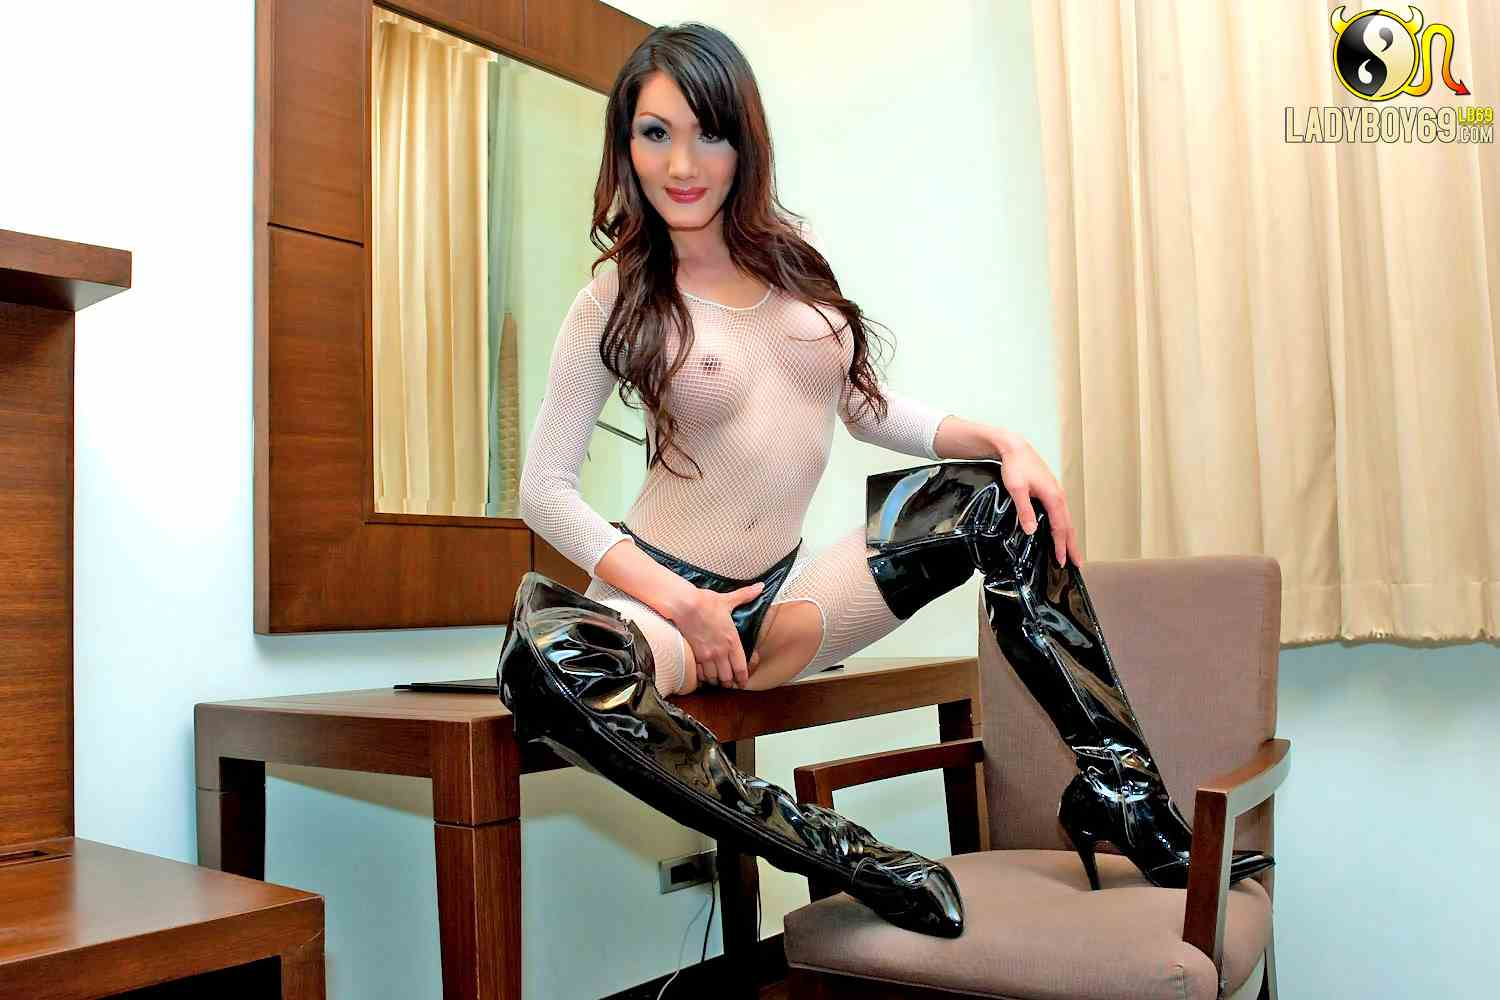 Shemale Thigh Boots 8